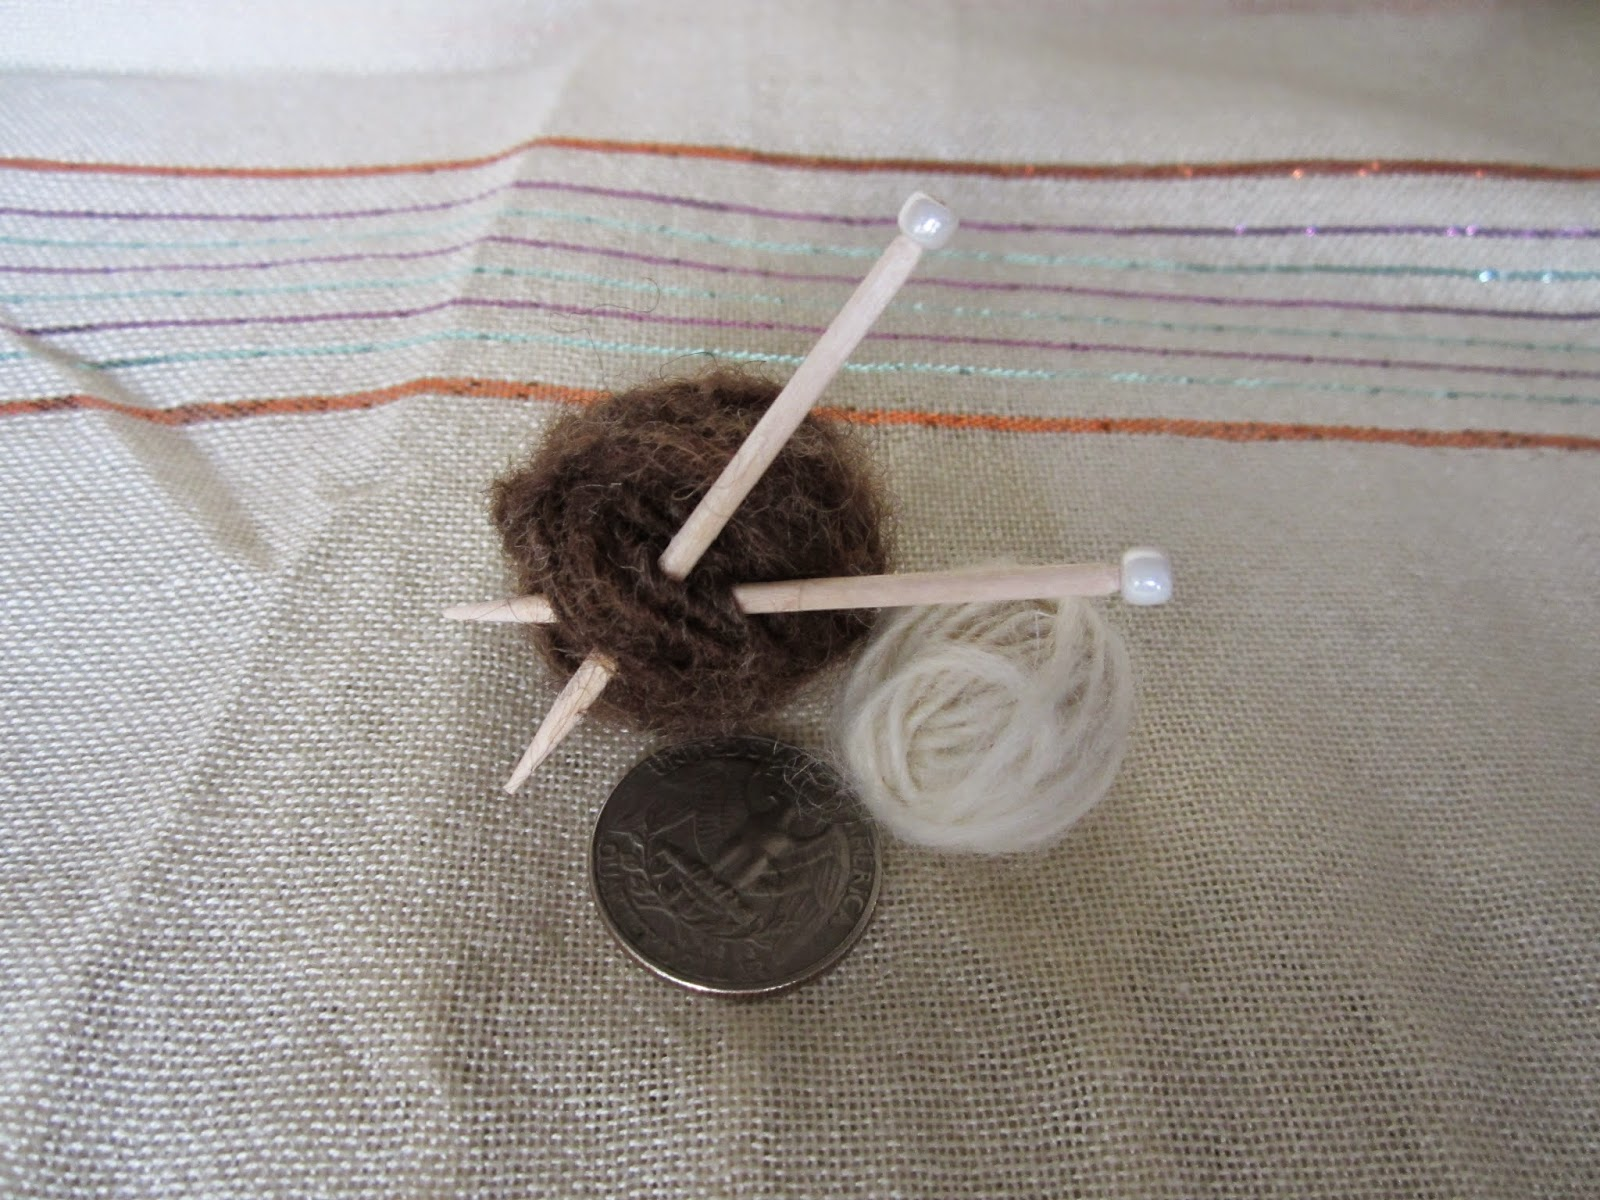 https://www.etsy.com/listing/211580489/50-off-sale-miniature-knitting-set?ref=shop_home_feat_2